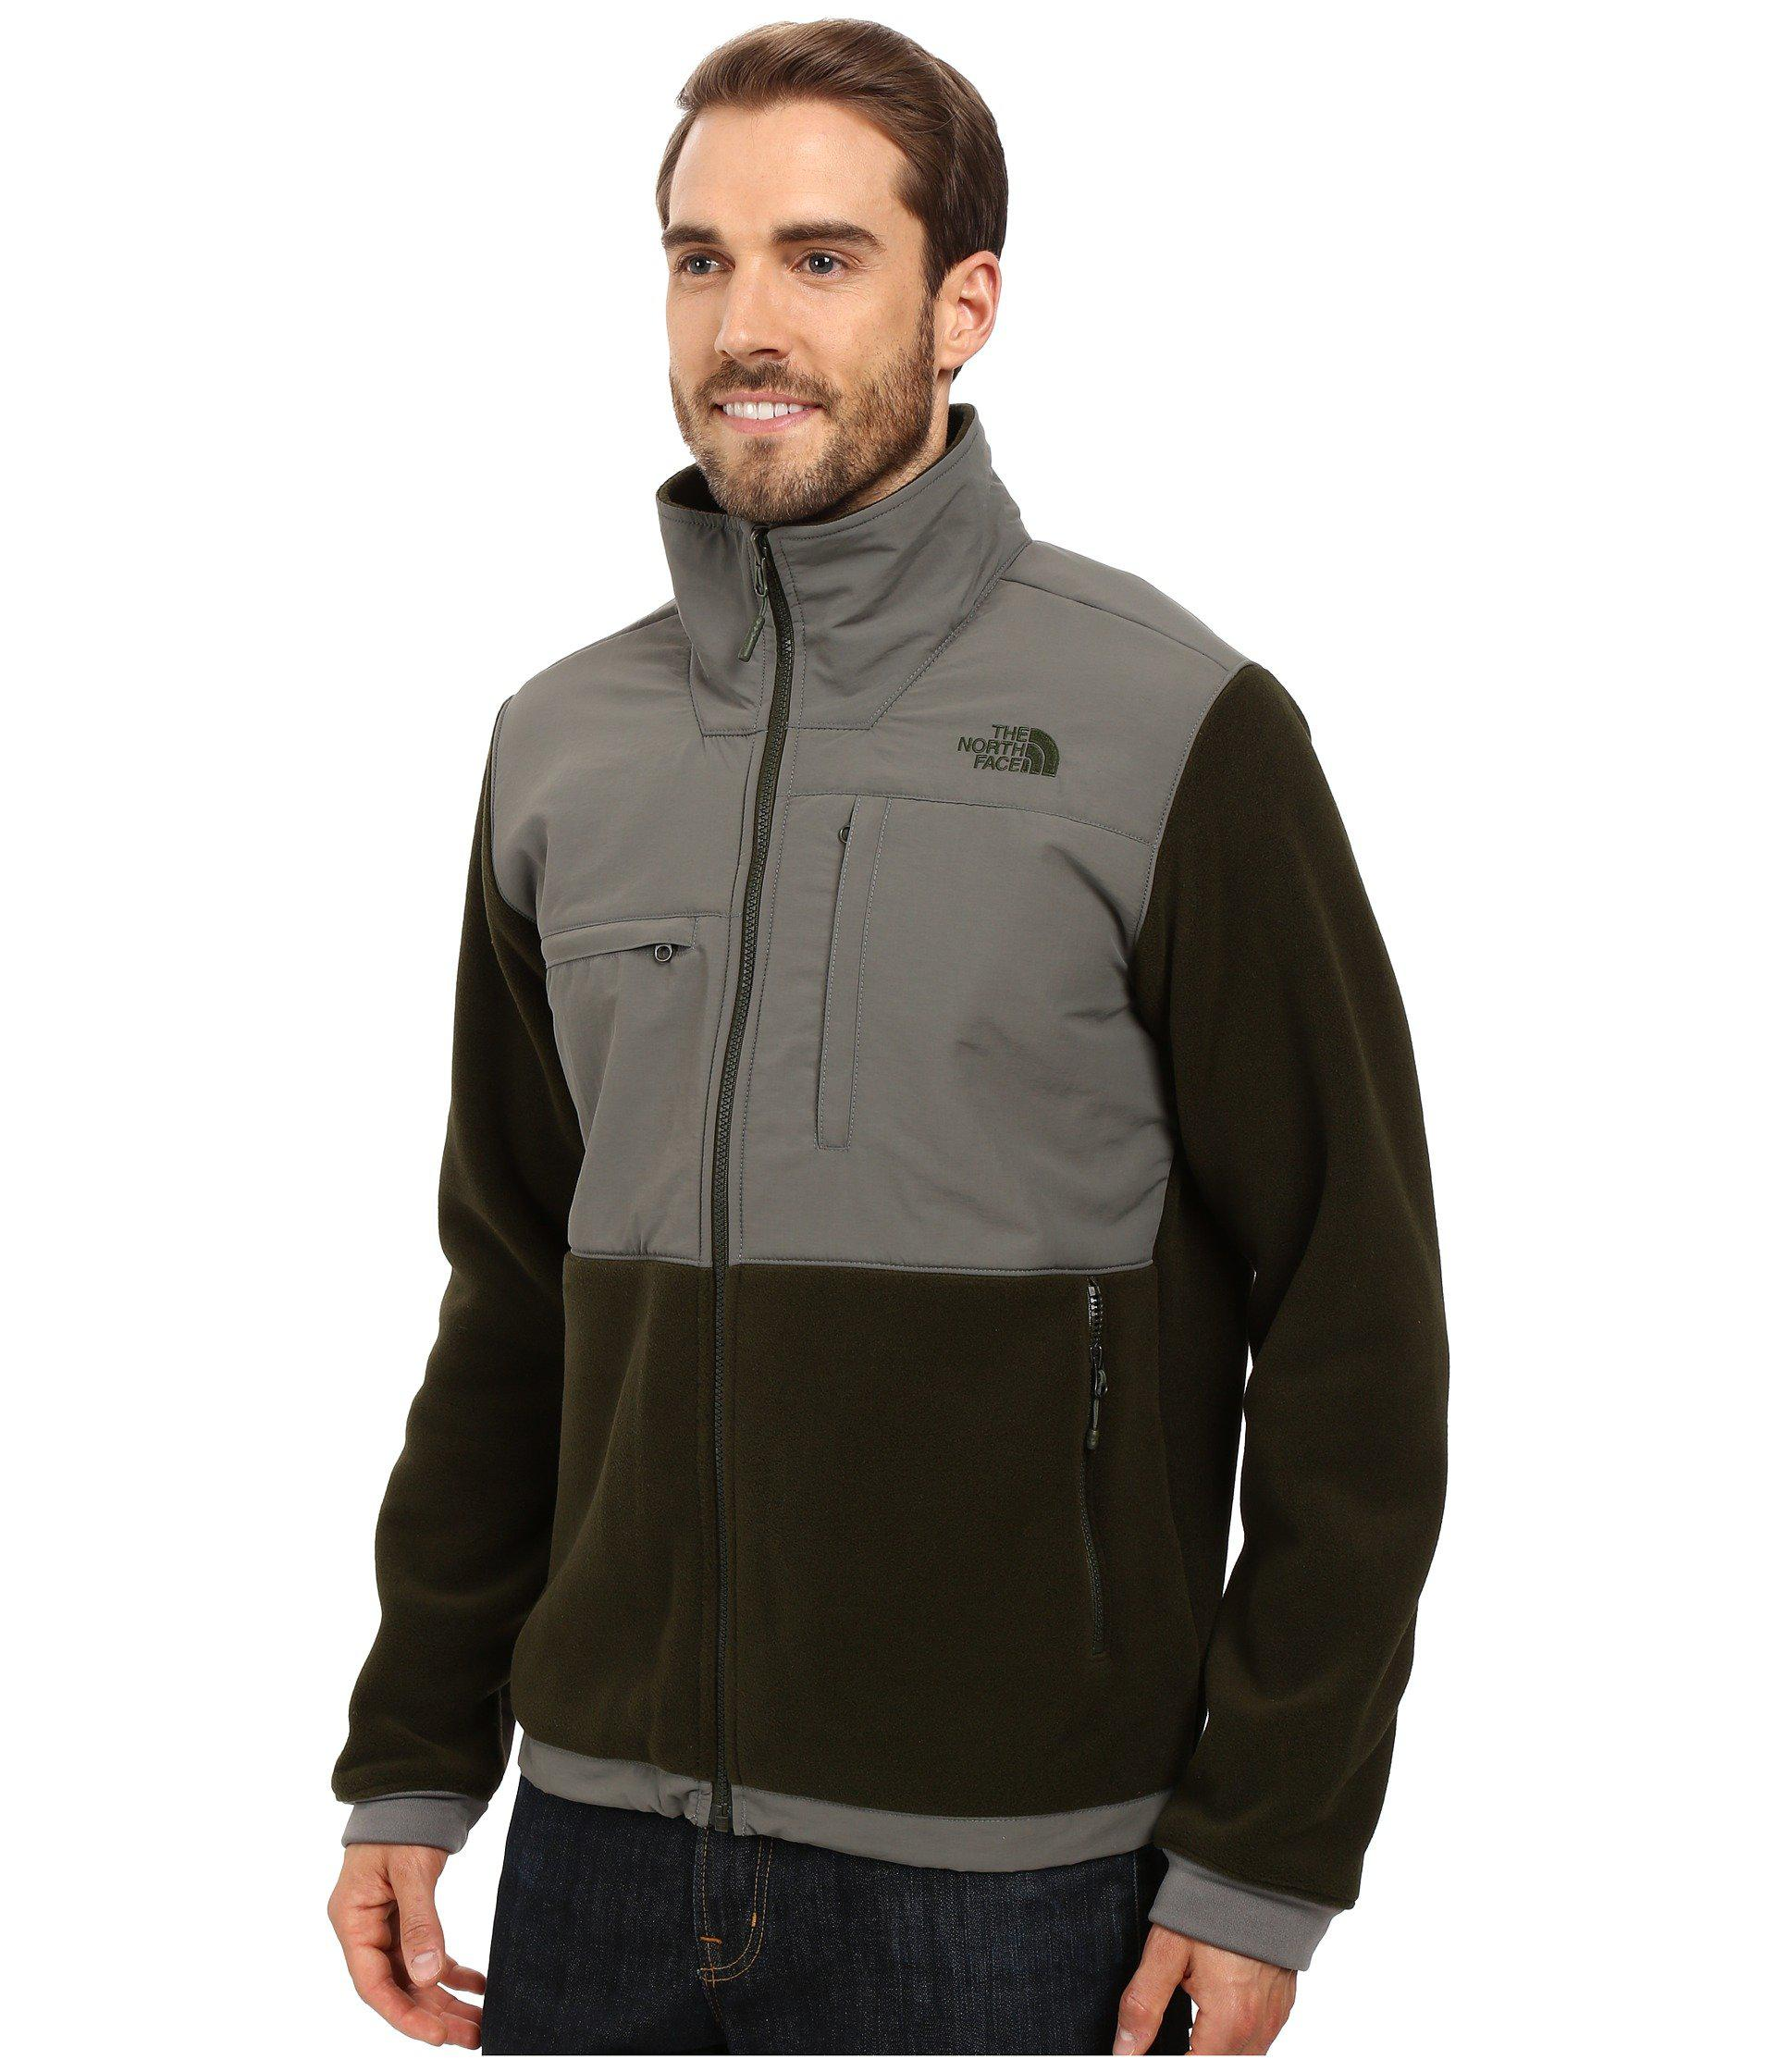 18a72b3820cb ... good lyst the north face denali 2 jacket recycled tnf black 1 mens  6501c 5c53f ...